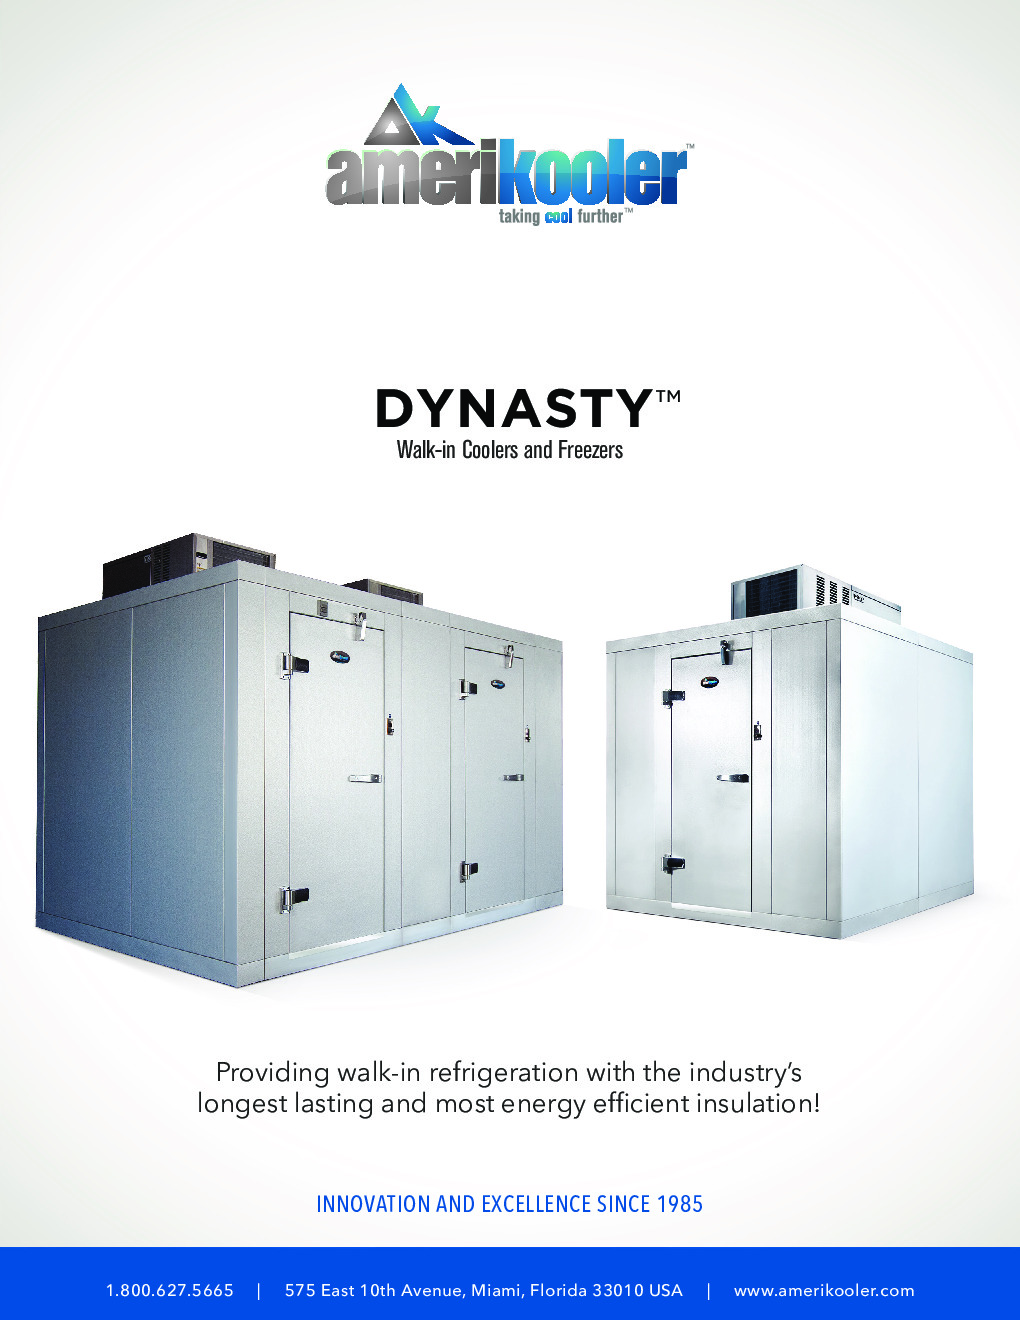 AmeriKooler DW071377F-4/9-RM 7' X 13' Walk-In Cooler, 9' L Cooler with Floor and 4' L Freezer, Remote